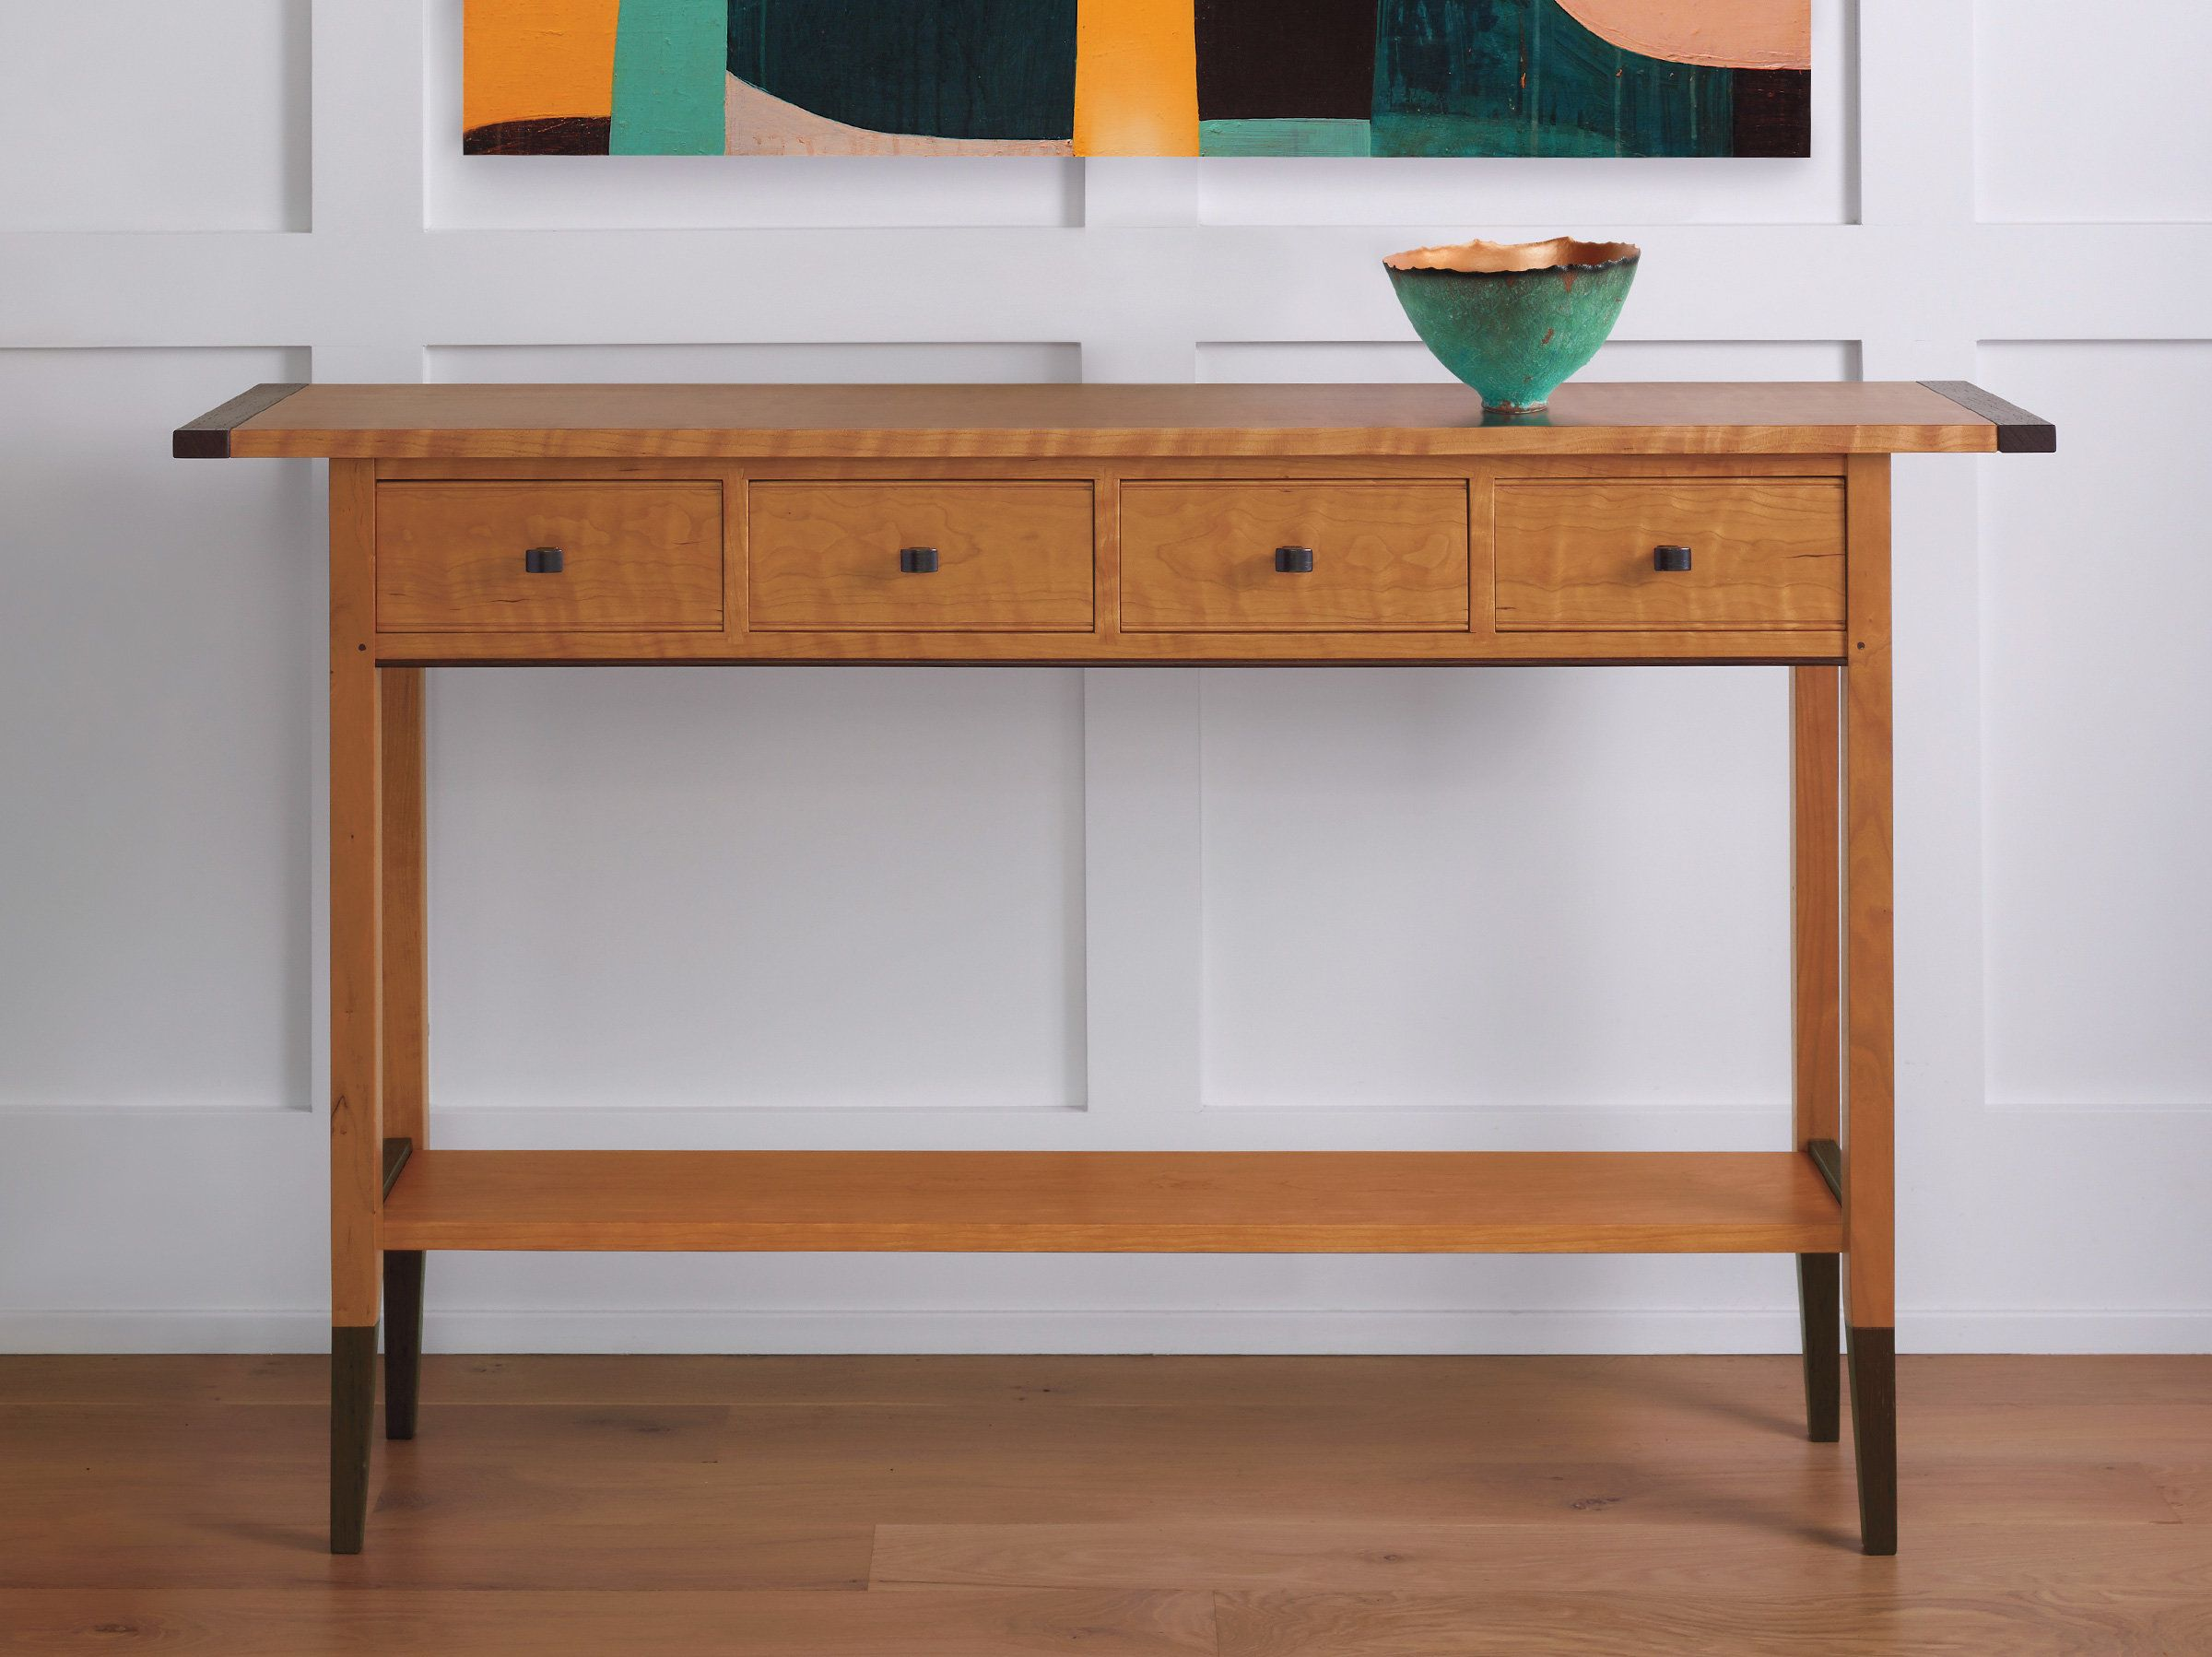 Solid Cherry Table By Tom Dumke Wood Console Table Artful Home Wood Console Table Wood Console Console Table